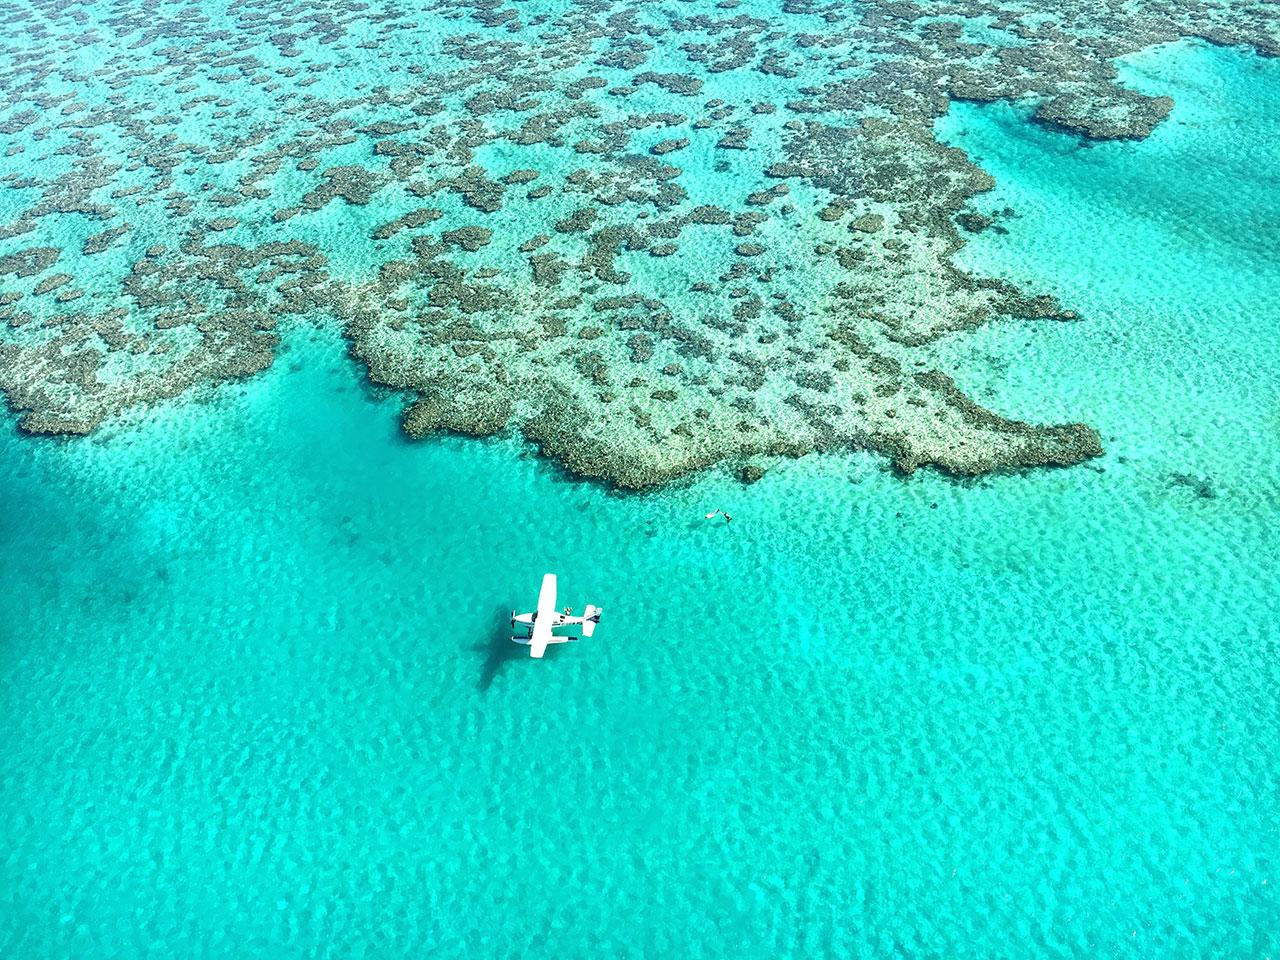 """<h2>The Great Barrier Reef</h2>                                                                                                                                                                 <p><p>In 2015, Australia's Great Barrier Reef just barely escaped being listed as an endangered World Heritage Site and in July 2016, it was <a rel=""""nofollow"""" href=""""https://www.theguardian.com/environment/2016/jun/07/the-great-barrier-reef-a-catastrophe-laid-bare"""">reported</a> that 25% of the reef had been killed off by bleaching, a side effect of climate change. As reefs die, so do the ecosystems they support, which include the humans they both feed and protect (from waves). Some scientists think it's too late to save the reef, but for now there are still hundredsof miles of healthy reef to visit—when doing so, we suggest you inquire about local coral cleanup programs. For more information on the dire situation currently faced by the world's reefs, check out the Netflix documentary<em>Chasing Coral</em><a rel=""""nofollow"""" href=""""https://www.netflix.com/title/80168188"""">here</a>.</p>"""